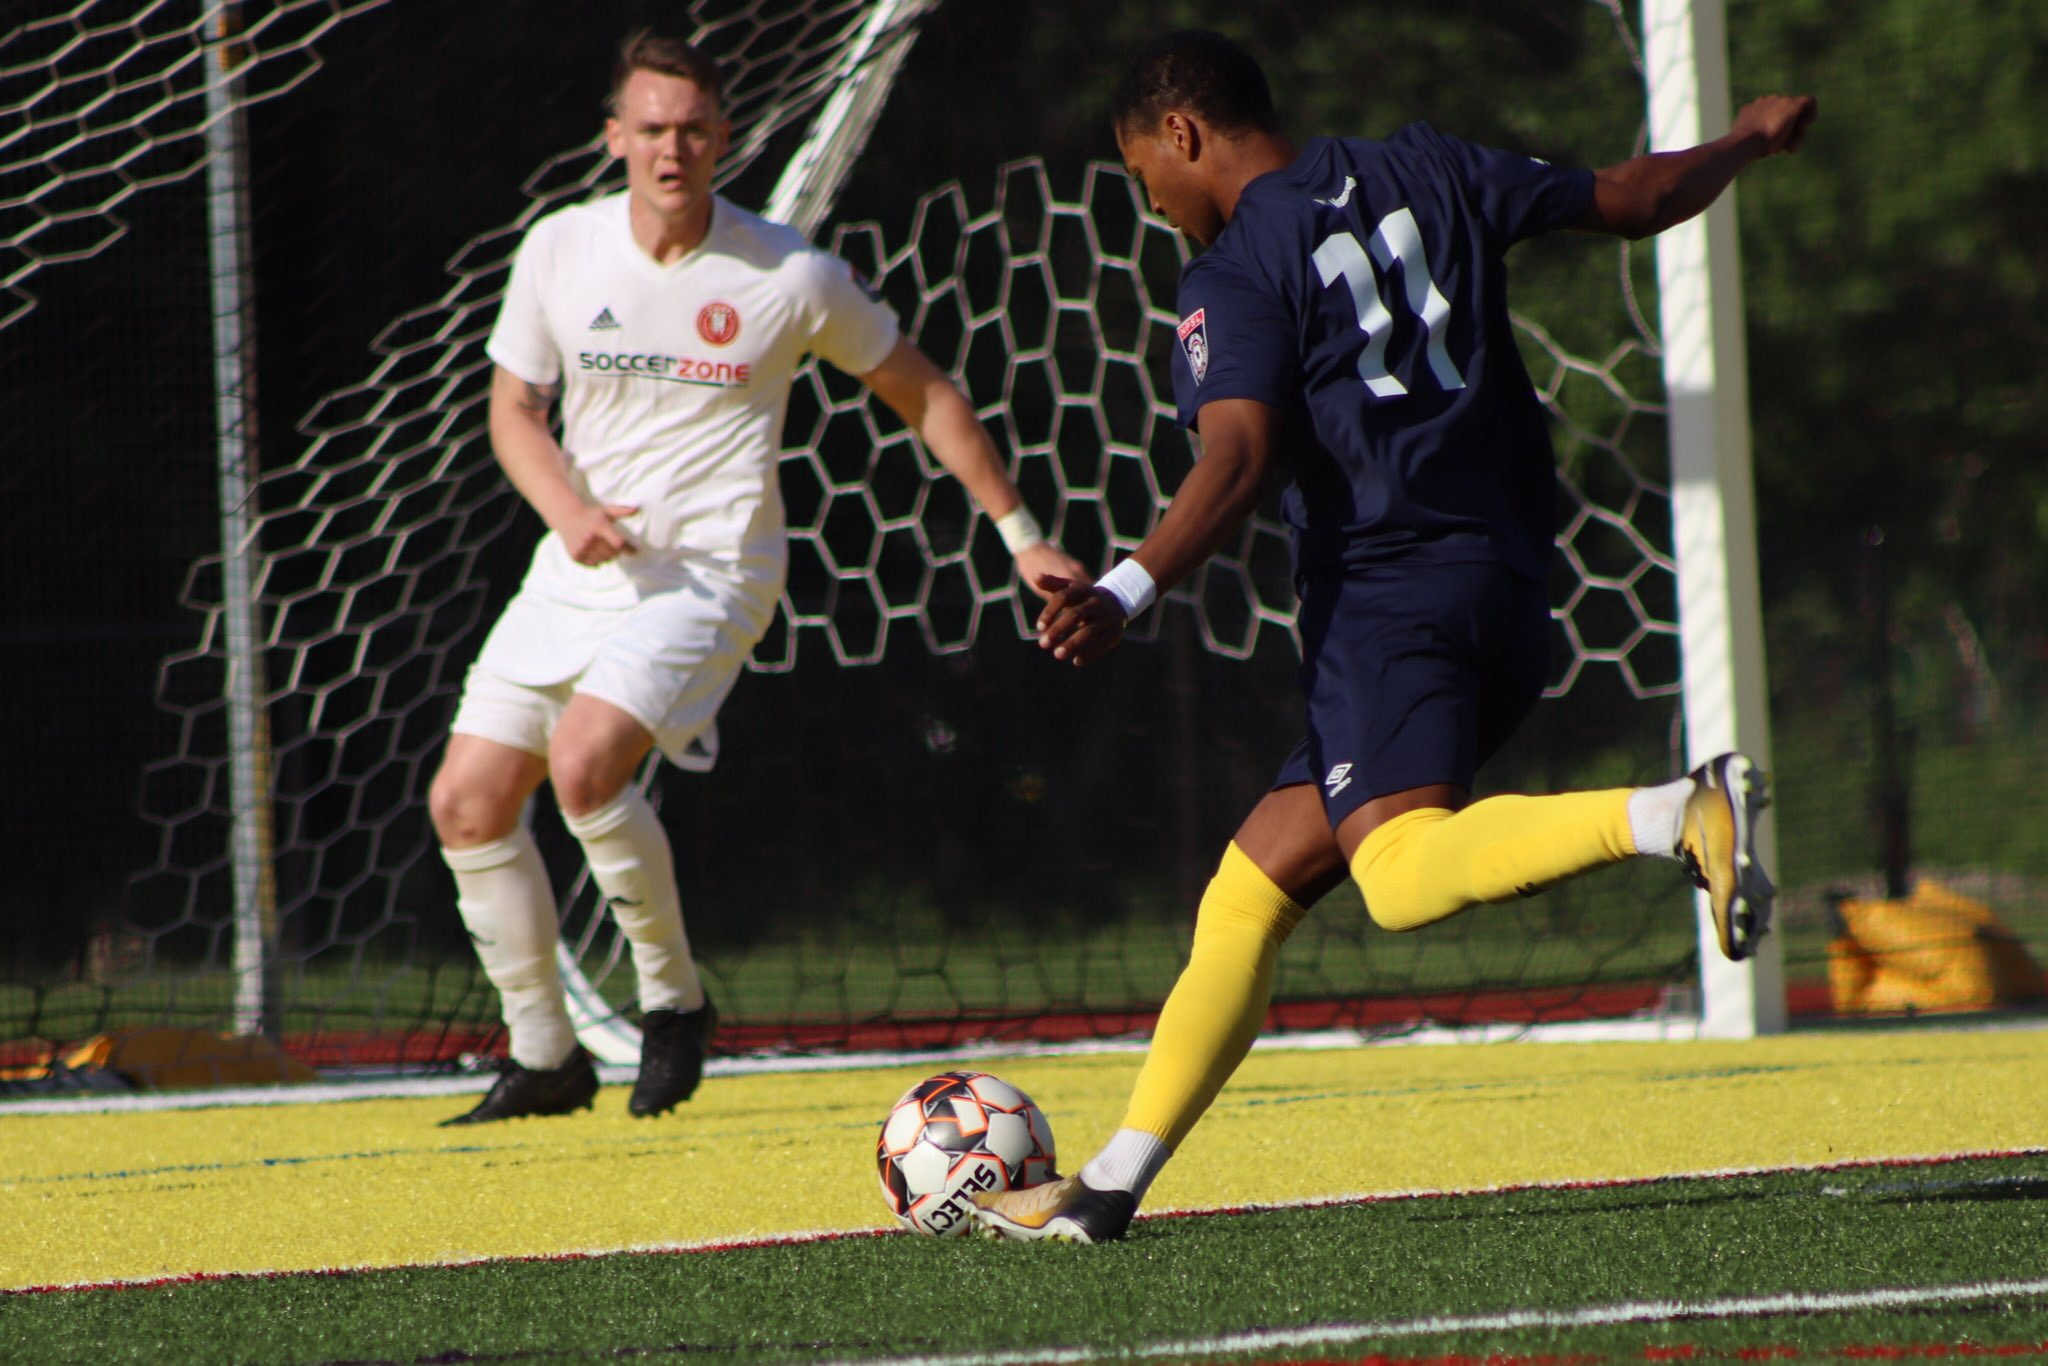 Forward Regsan Watkins scored the lone goal for FC Monmouth in Wednesday night's loss.